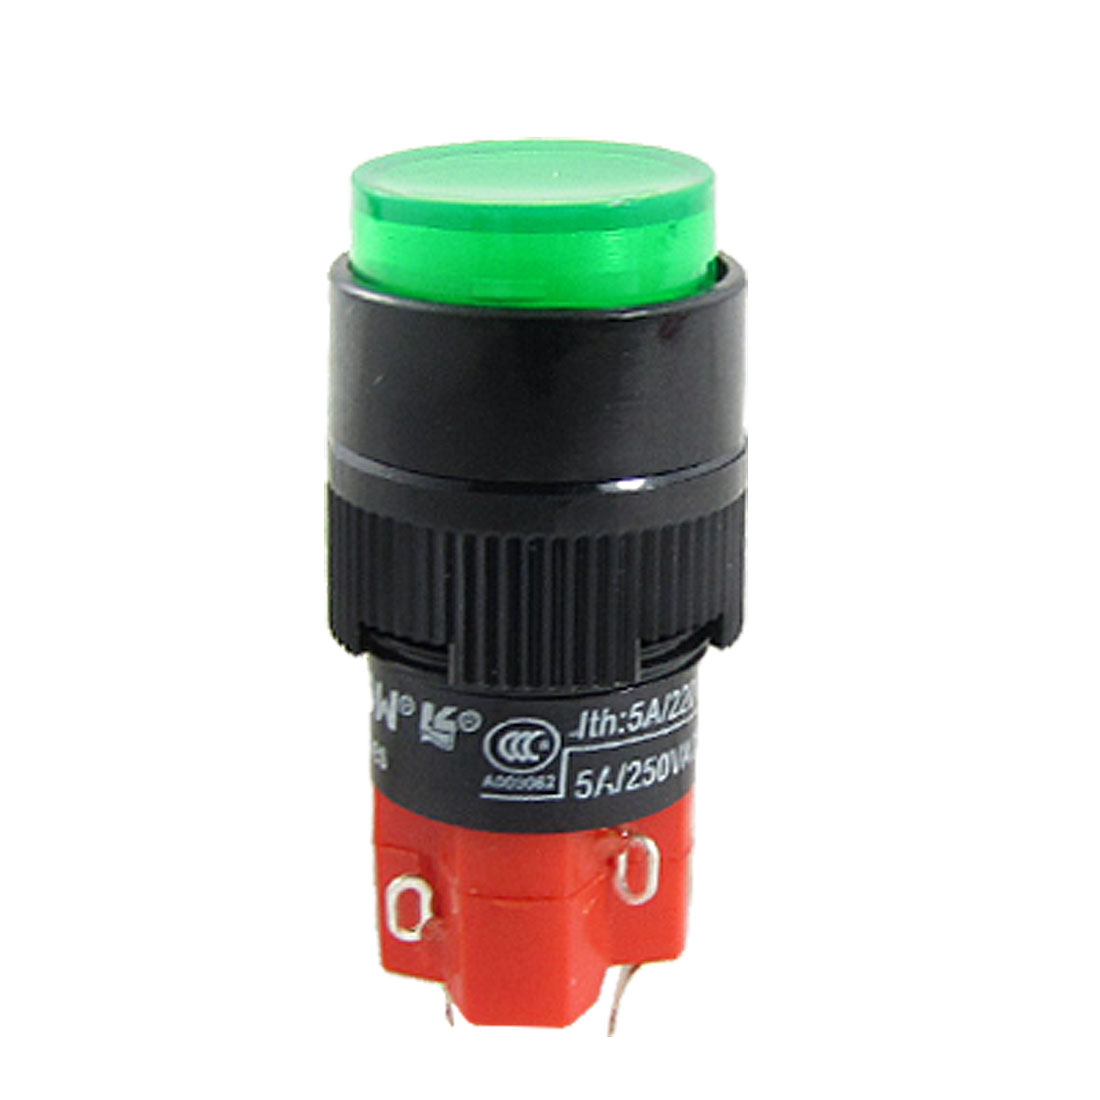 S1Y-11E Green Push Button Self Locking Switch w LED Signal Lamp AC 220V